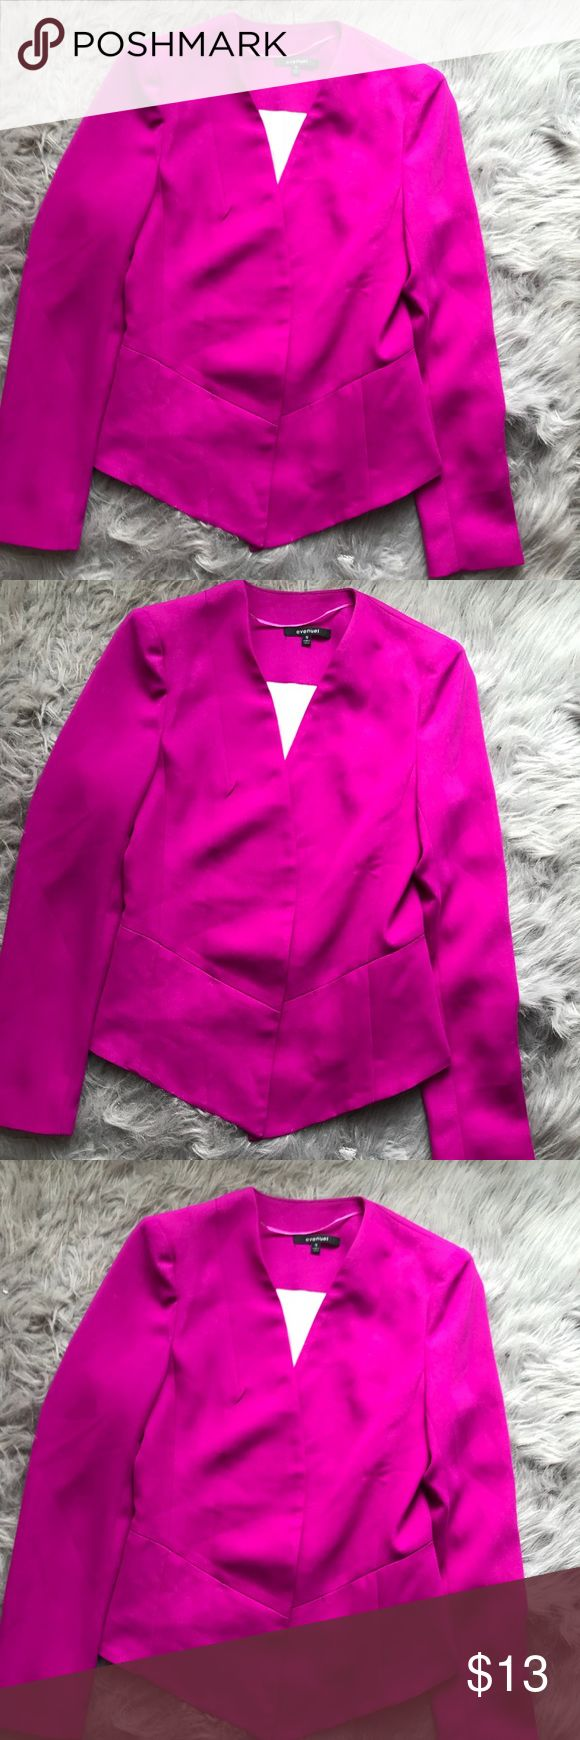 Purple blazer New without tags open front purple blazer, no rips tears, stains or smell Jackets & Coats